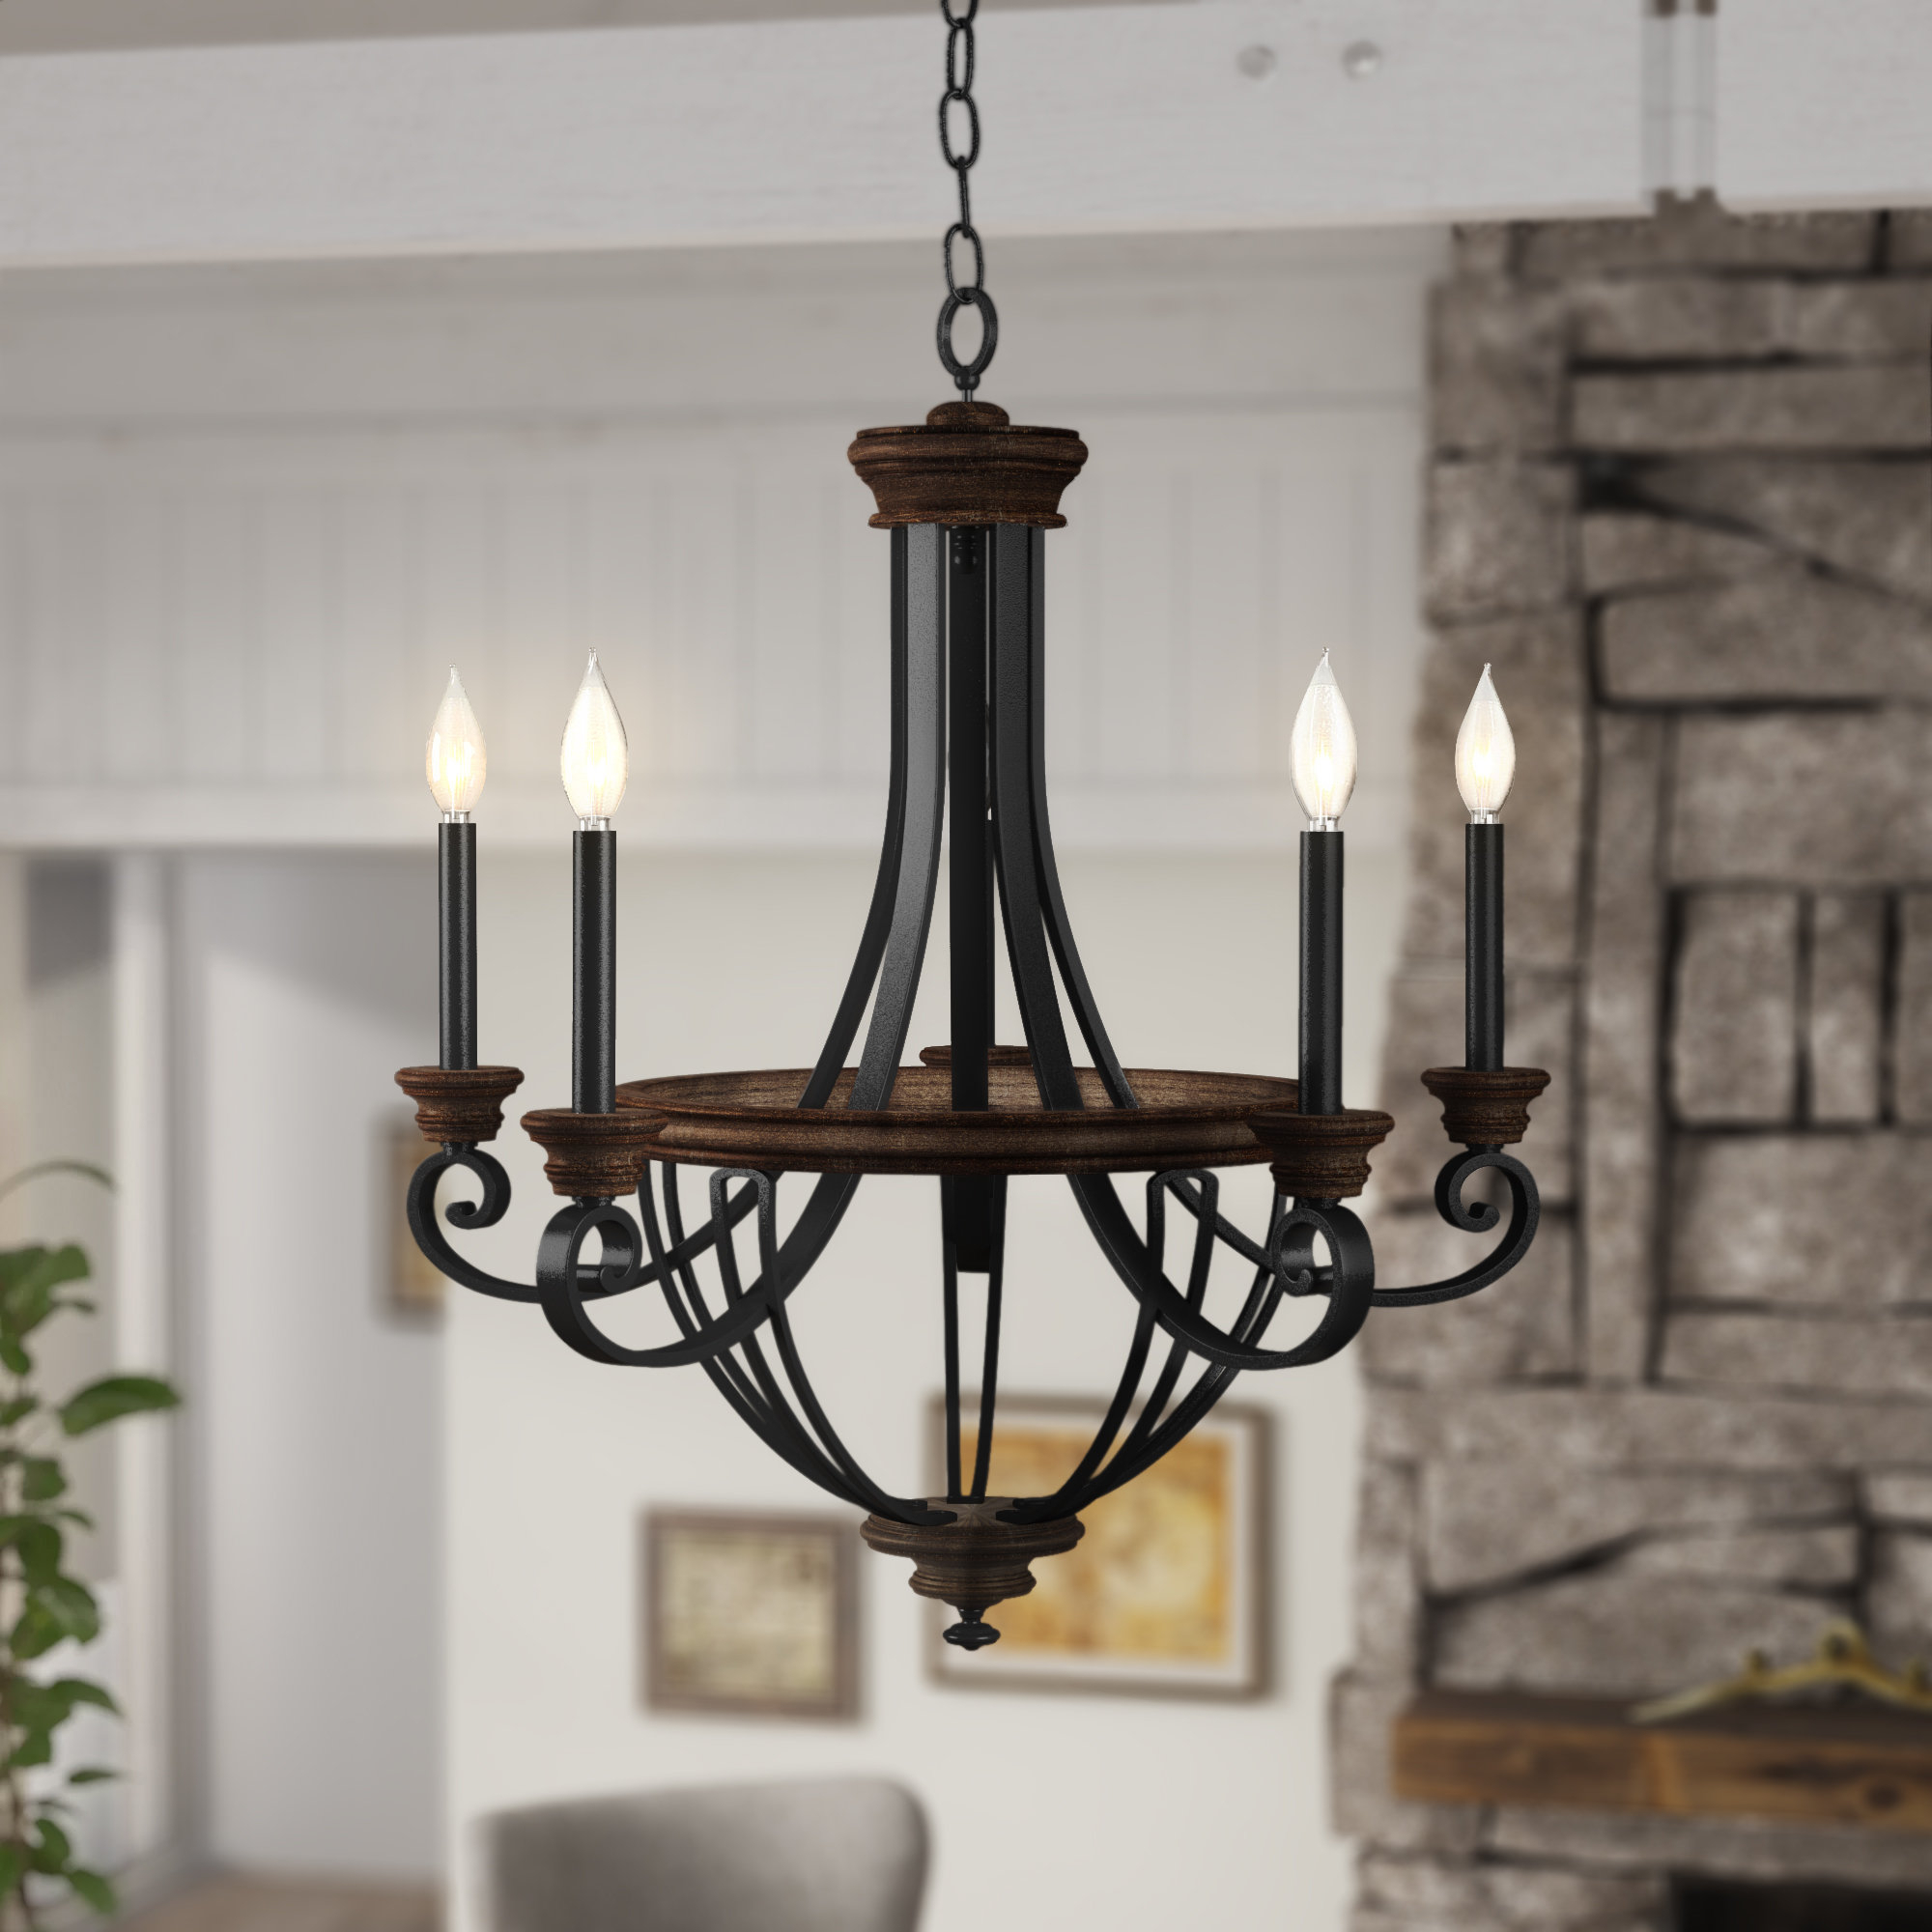 Nanteuil 5 Light Empire Chandelier In Widely Used Kenna 5 Light Empire Chandeliers (View 17 of 25)